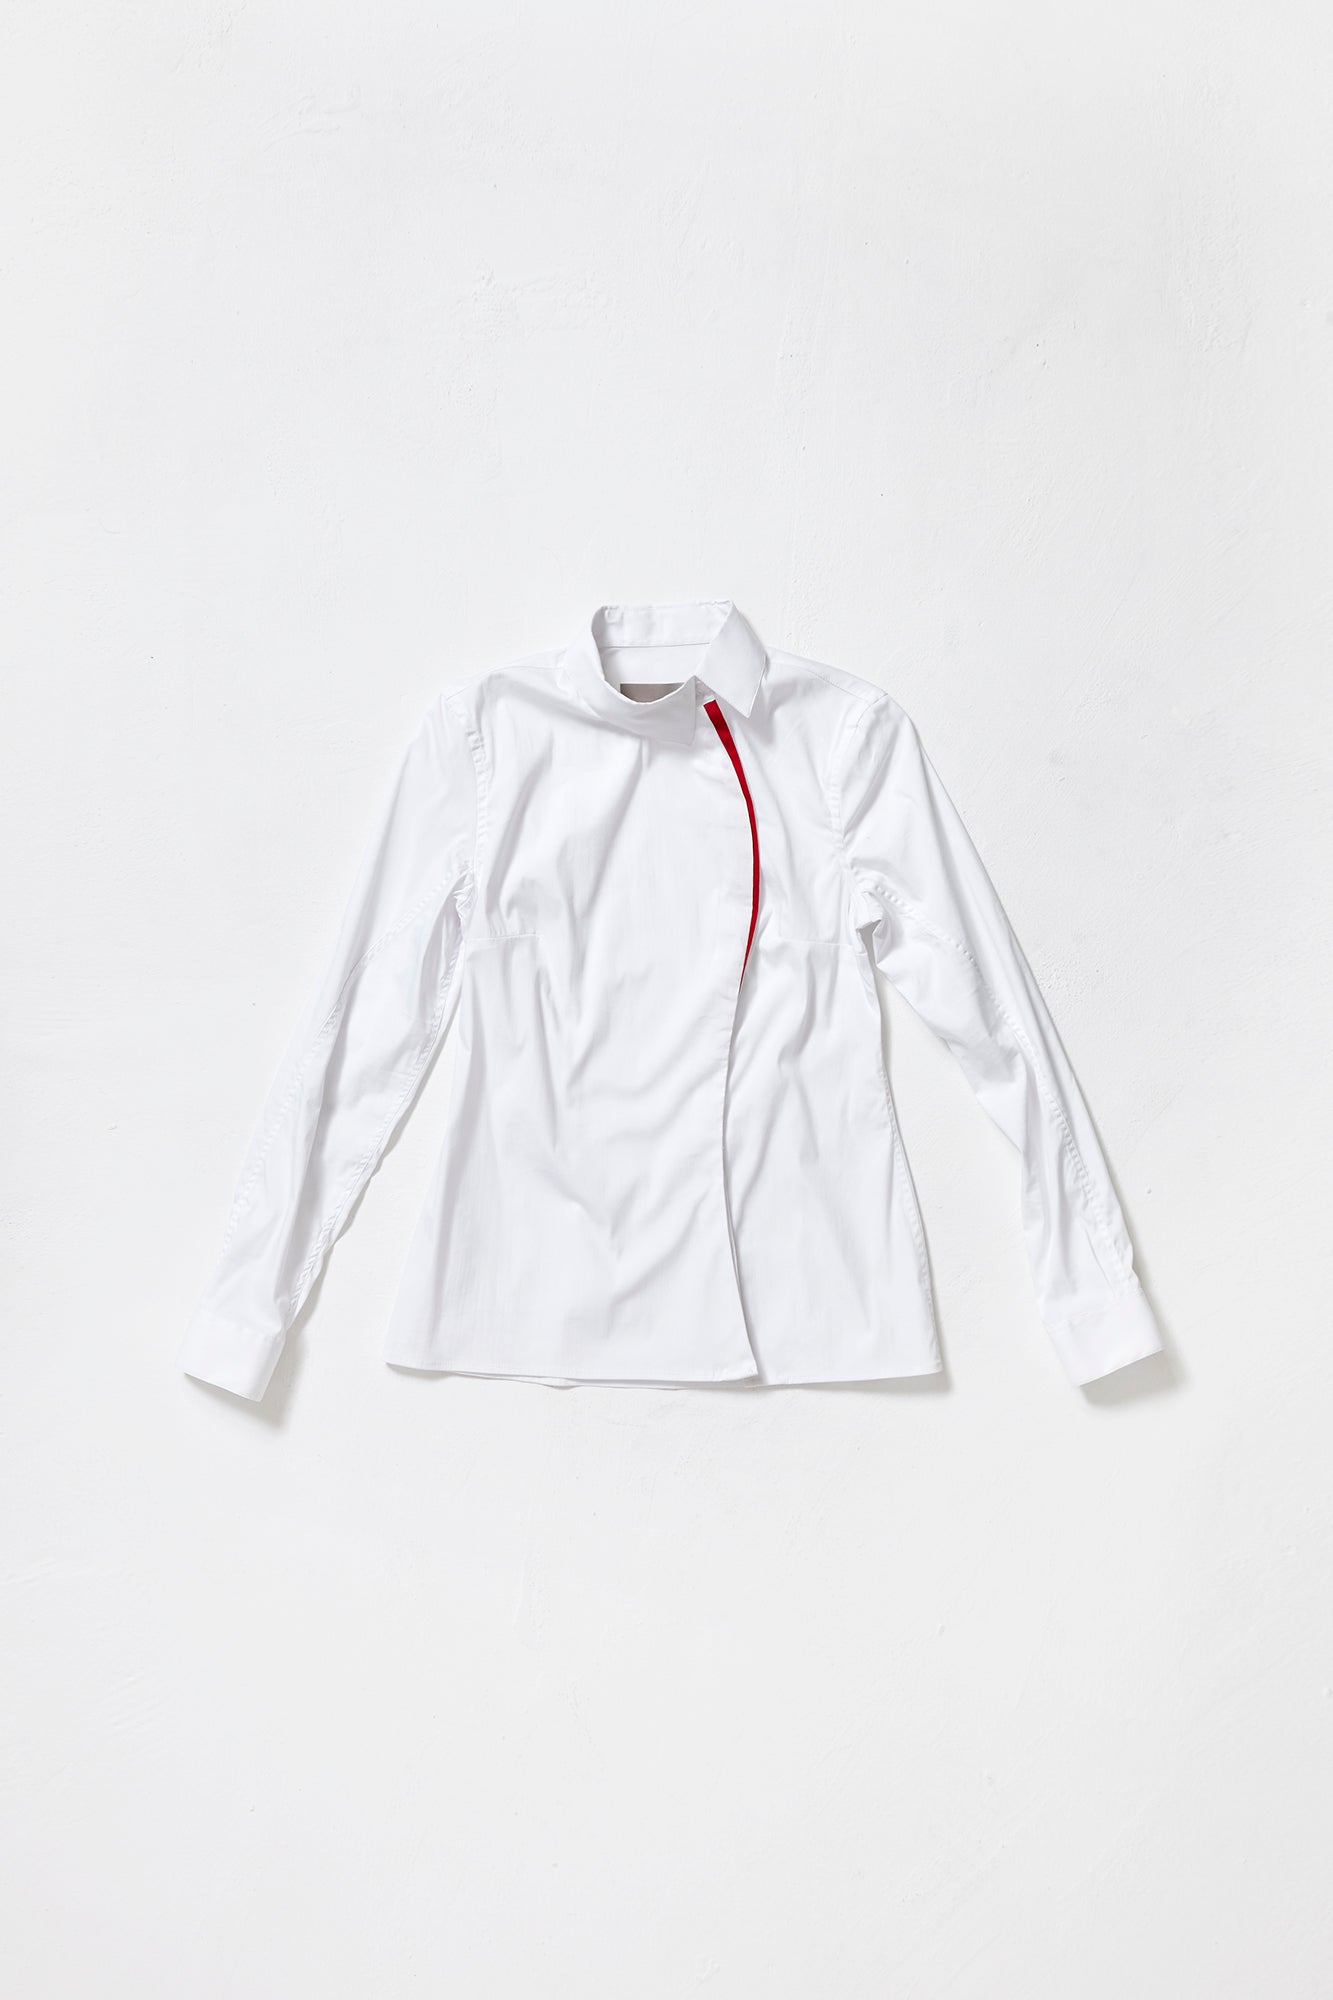 WHITE ONE-SIDED SHIRT with red decor line for women